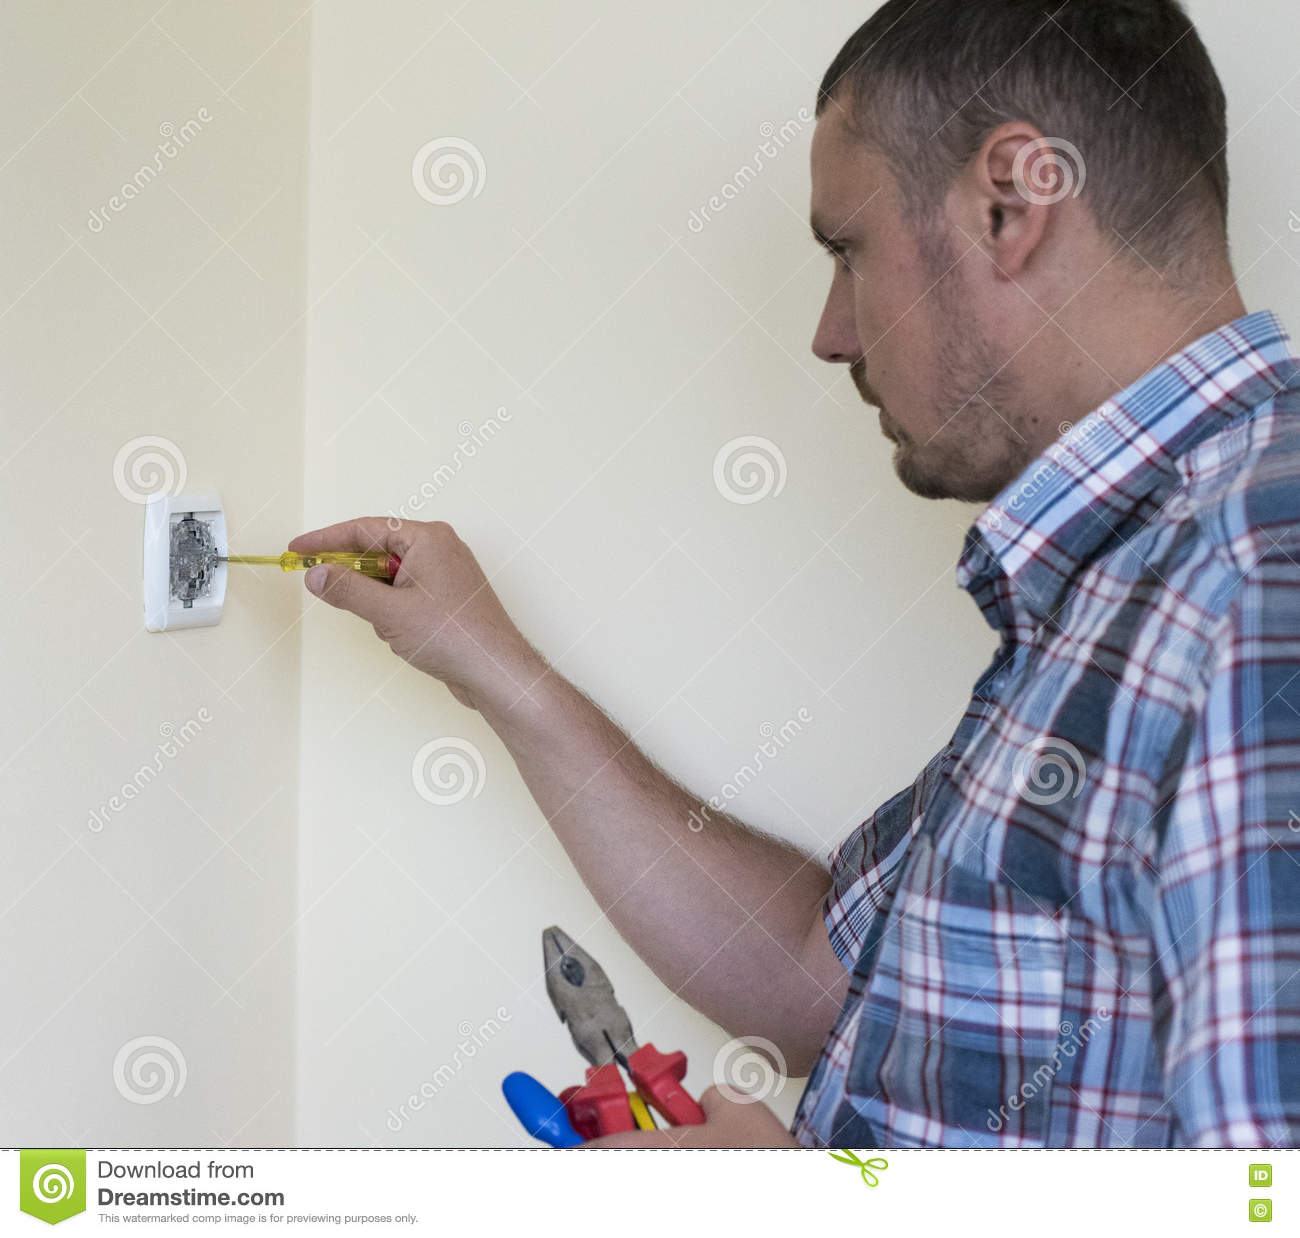 Man Installing Light Switch Stock Photo - Image of outlet ...